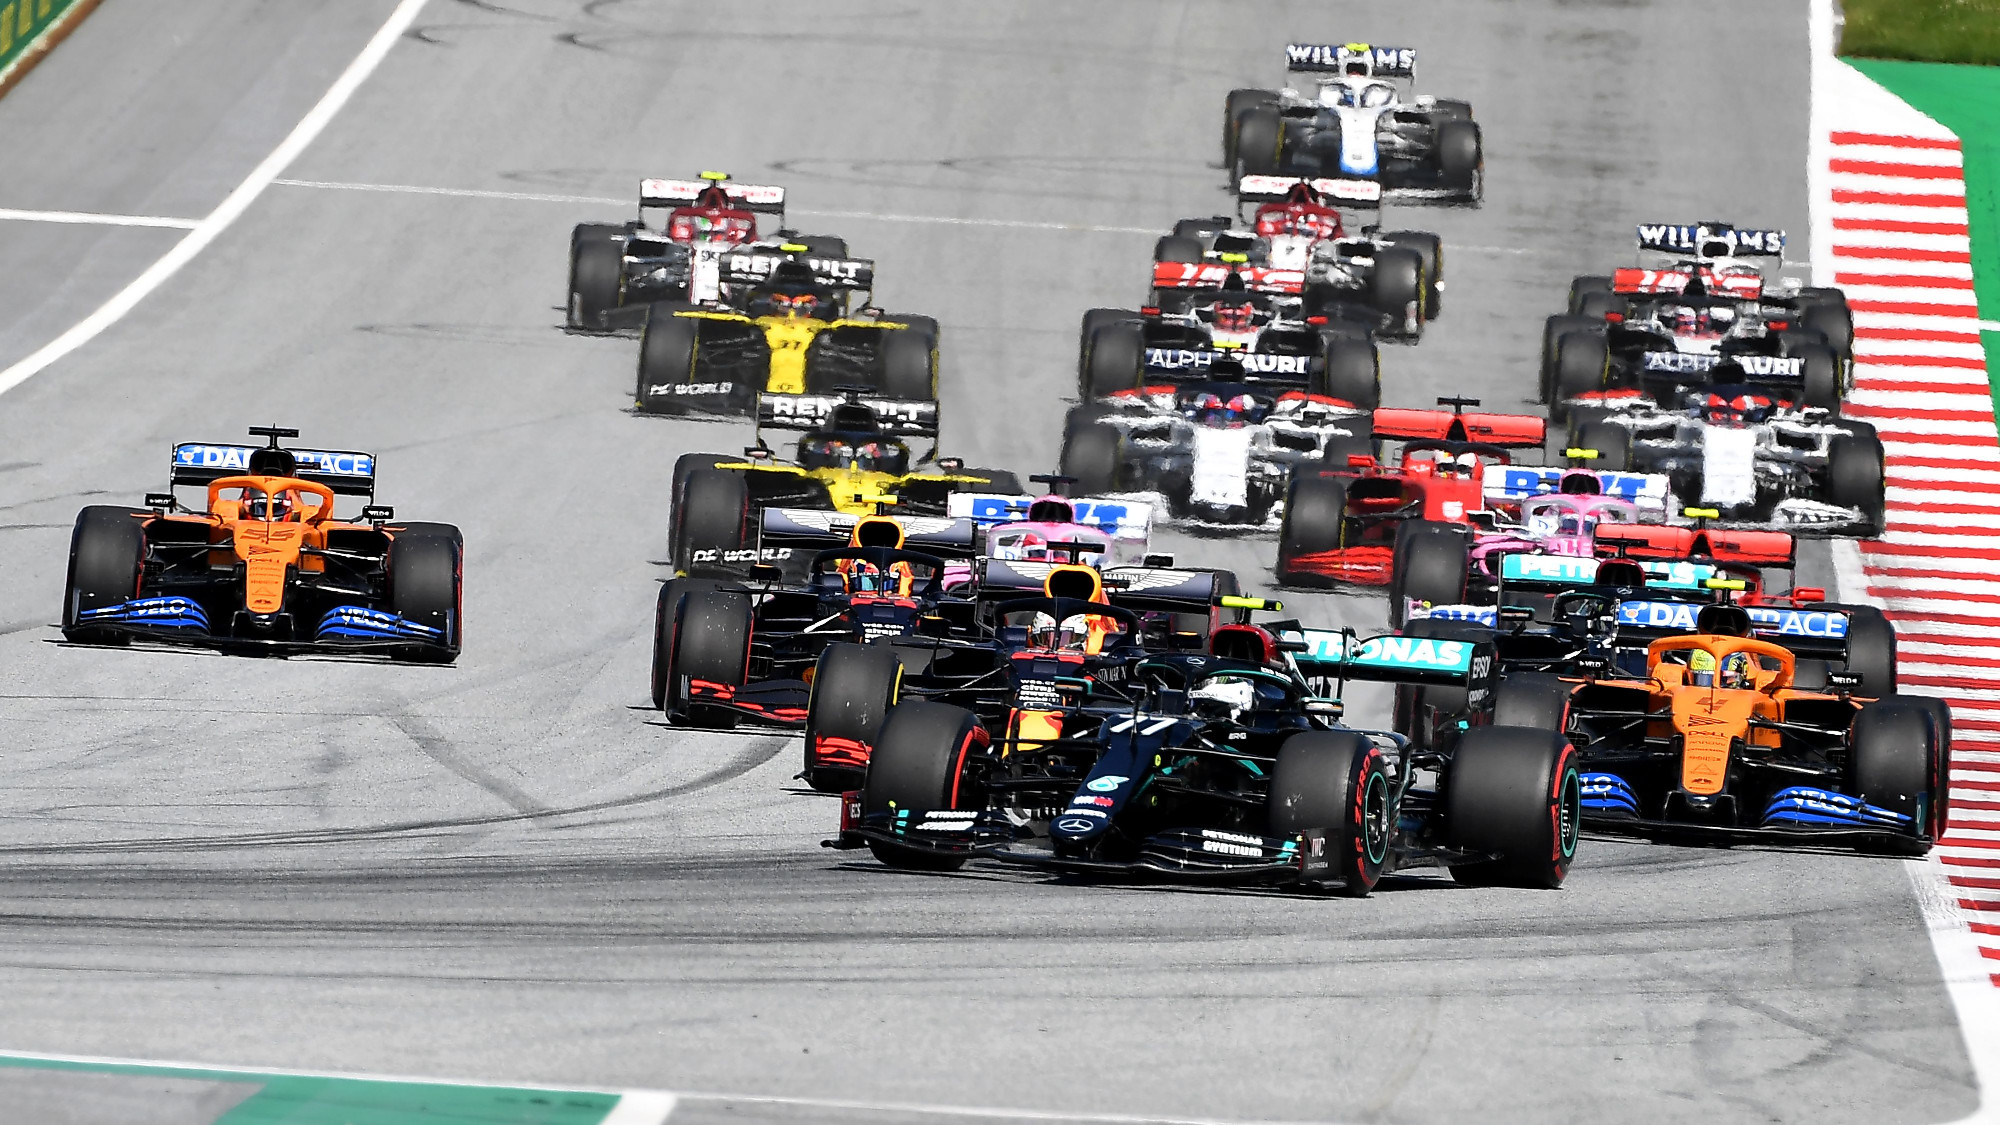 Will anything change for race two in Austria?